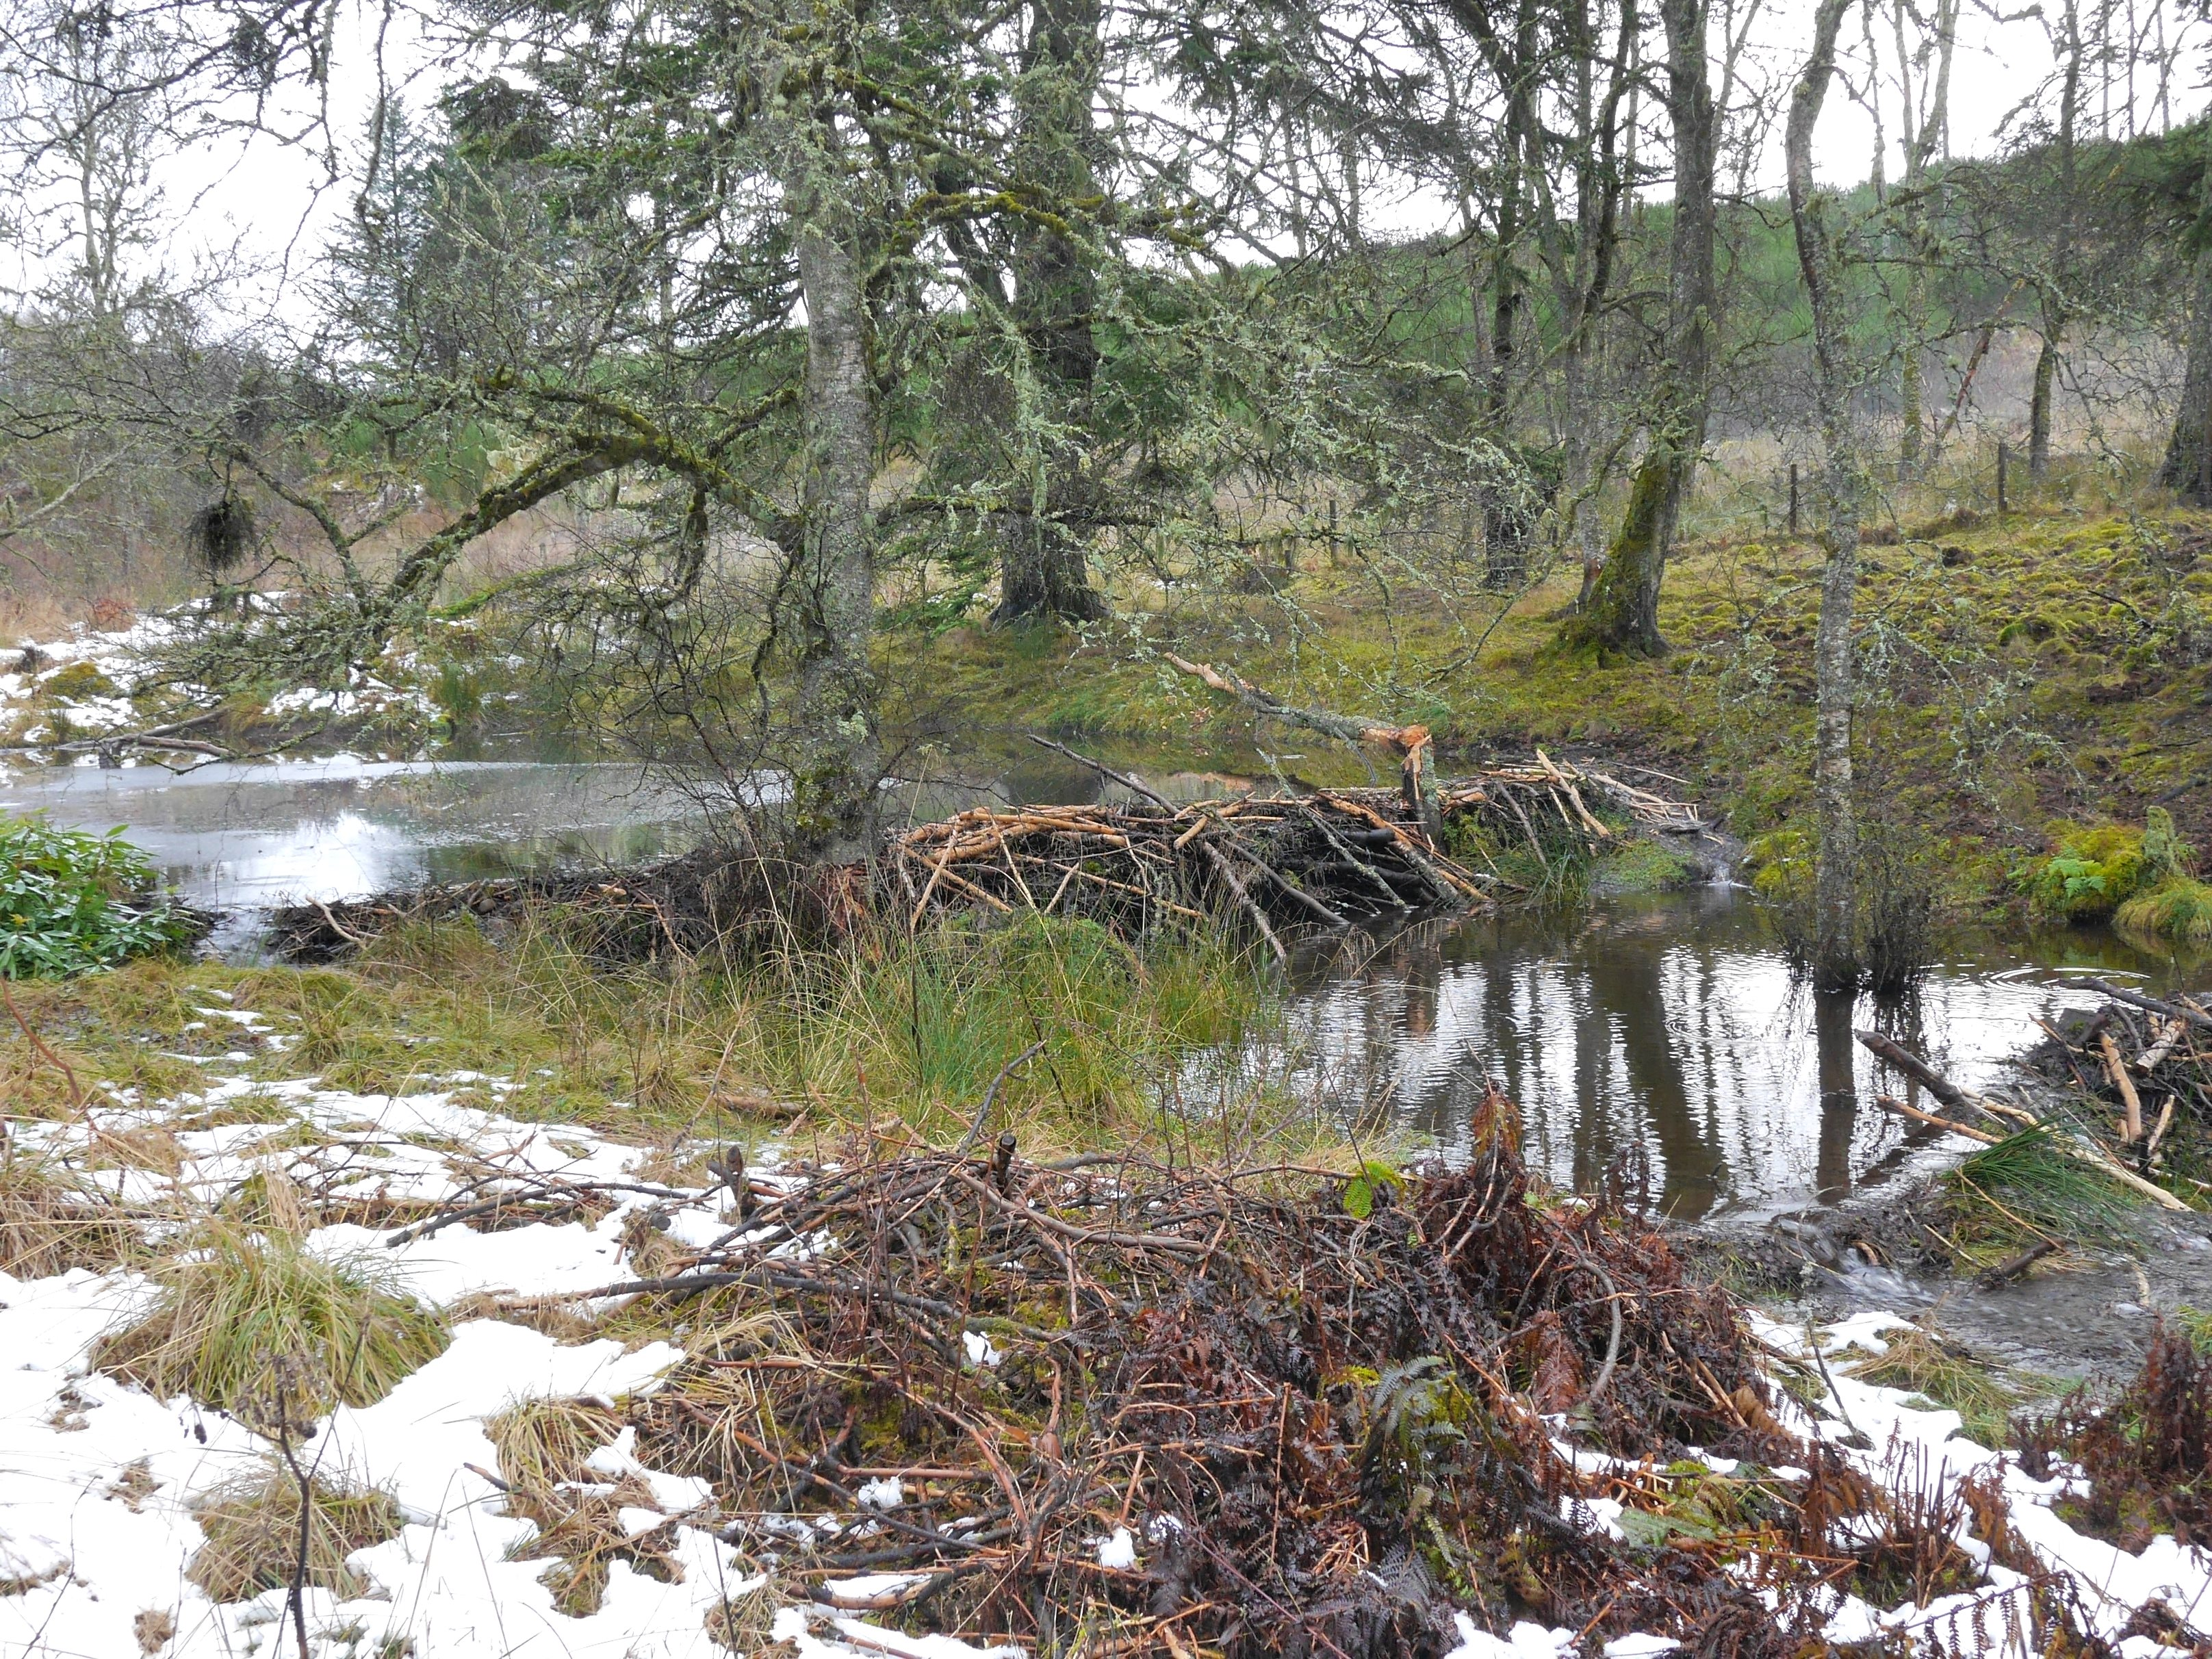 A pair of beaver dams in Bamff, Perthshire. Photo: Paul Ramsay.